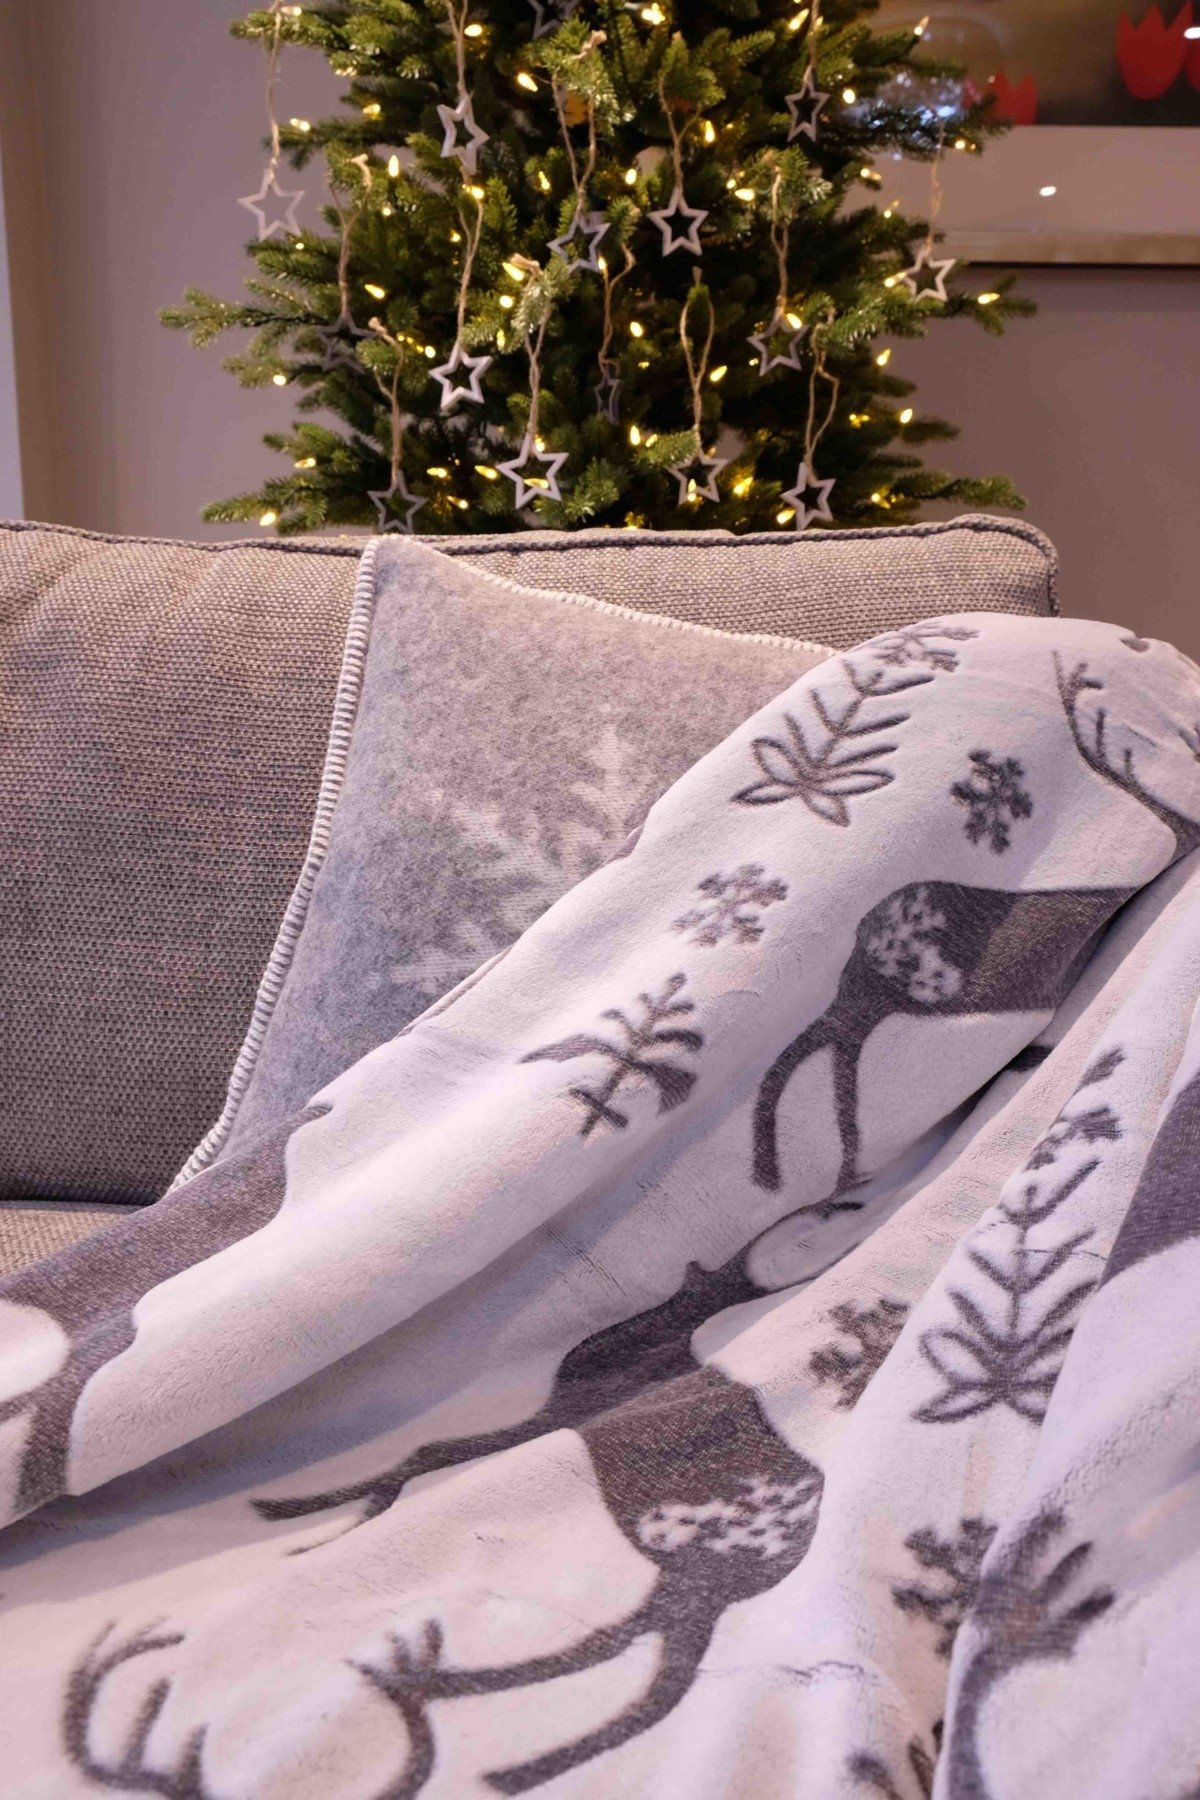 Cox and Cox contemporary Christmas decorating stag reindeer blanket fleece